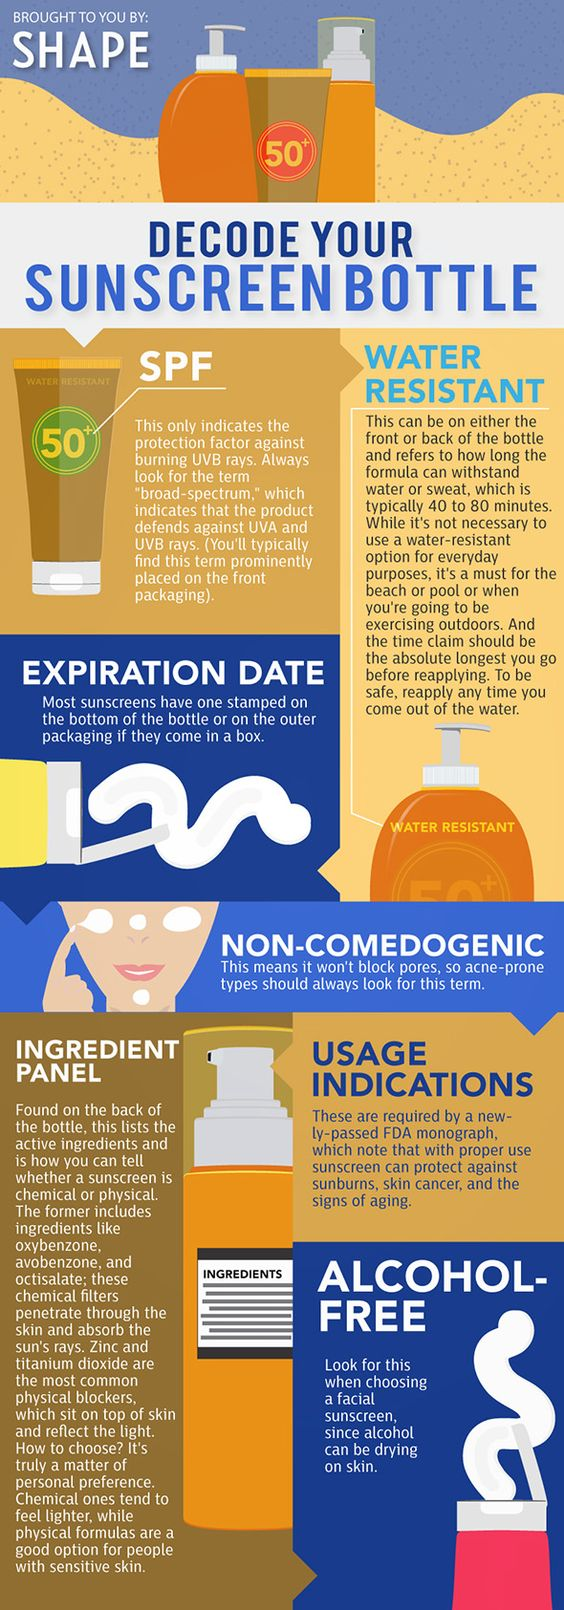 Decode Your Sunscreen Bottle via Shape || With all of the labeling on sunscreen packaging, it's important to know what you're getting and if it's suitable for your needs. It's also important to reapply often and to use the correct amounts. Thankfully, here's an infographic for that!